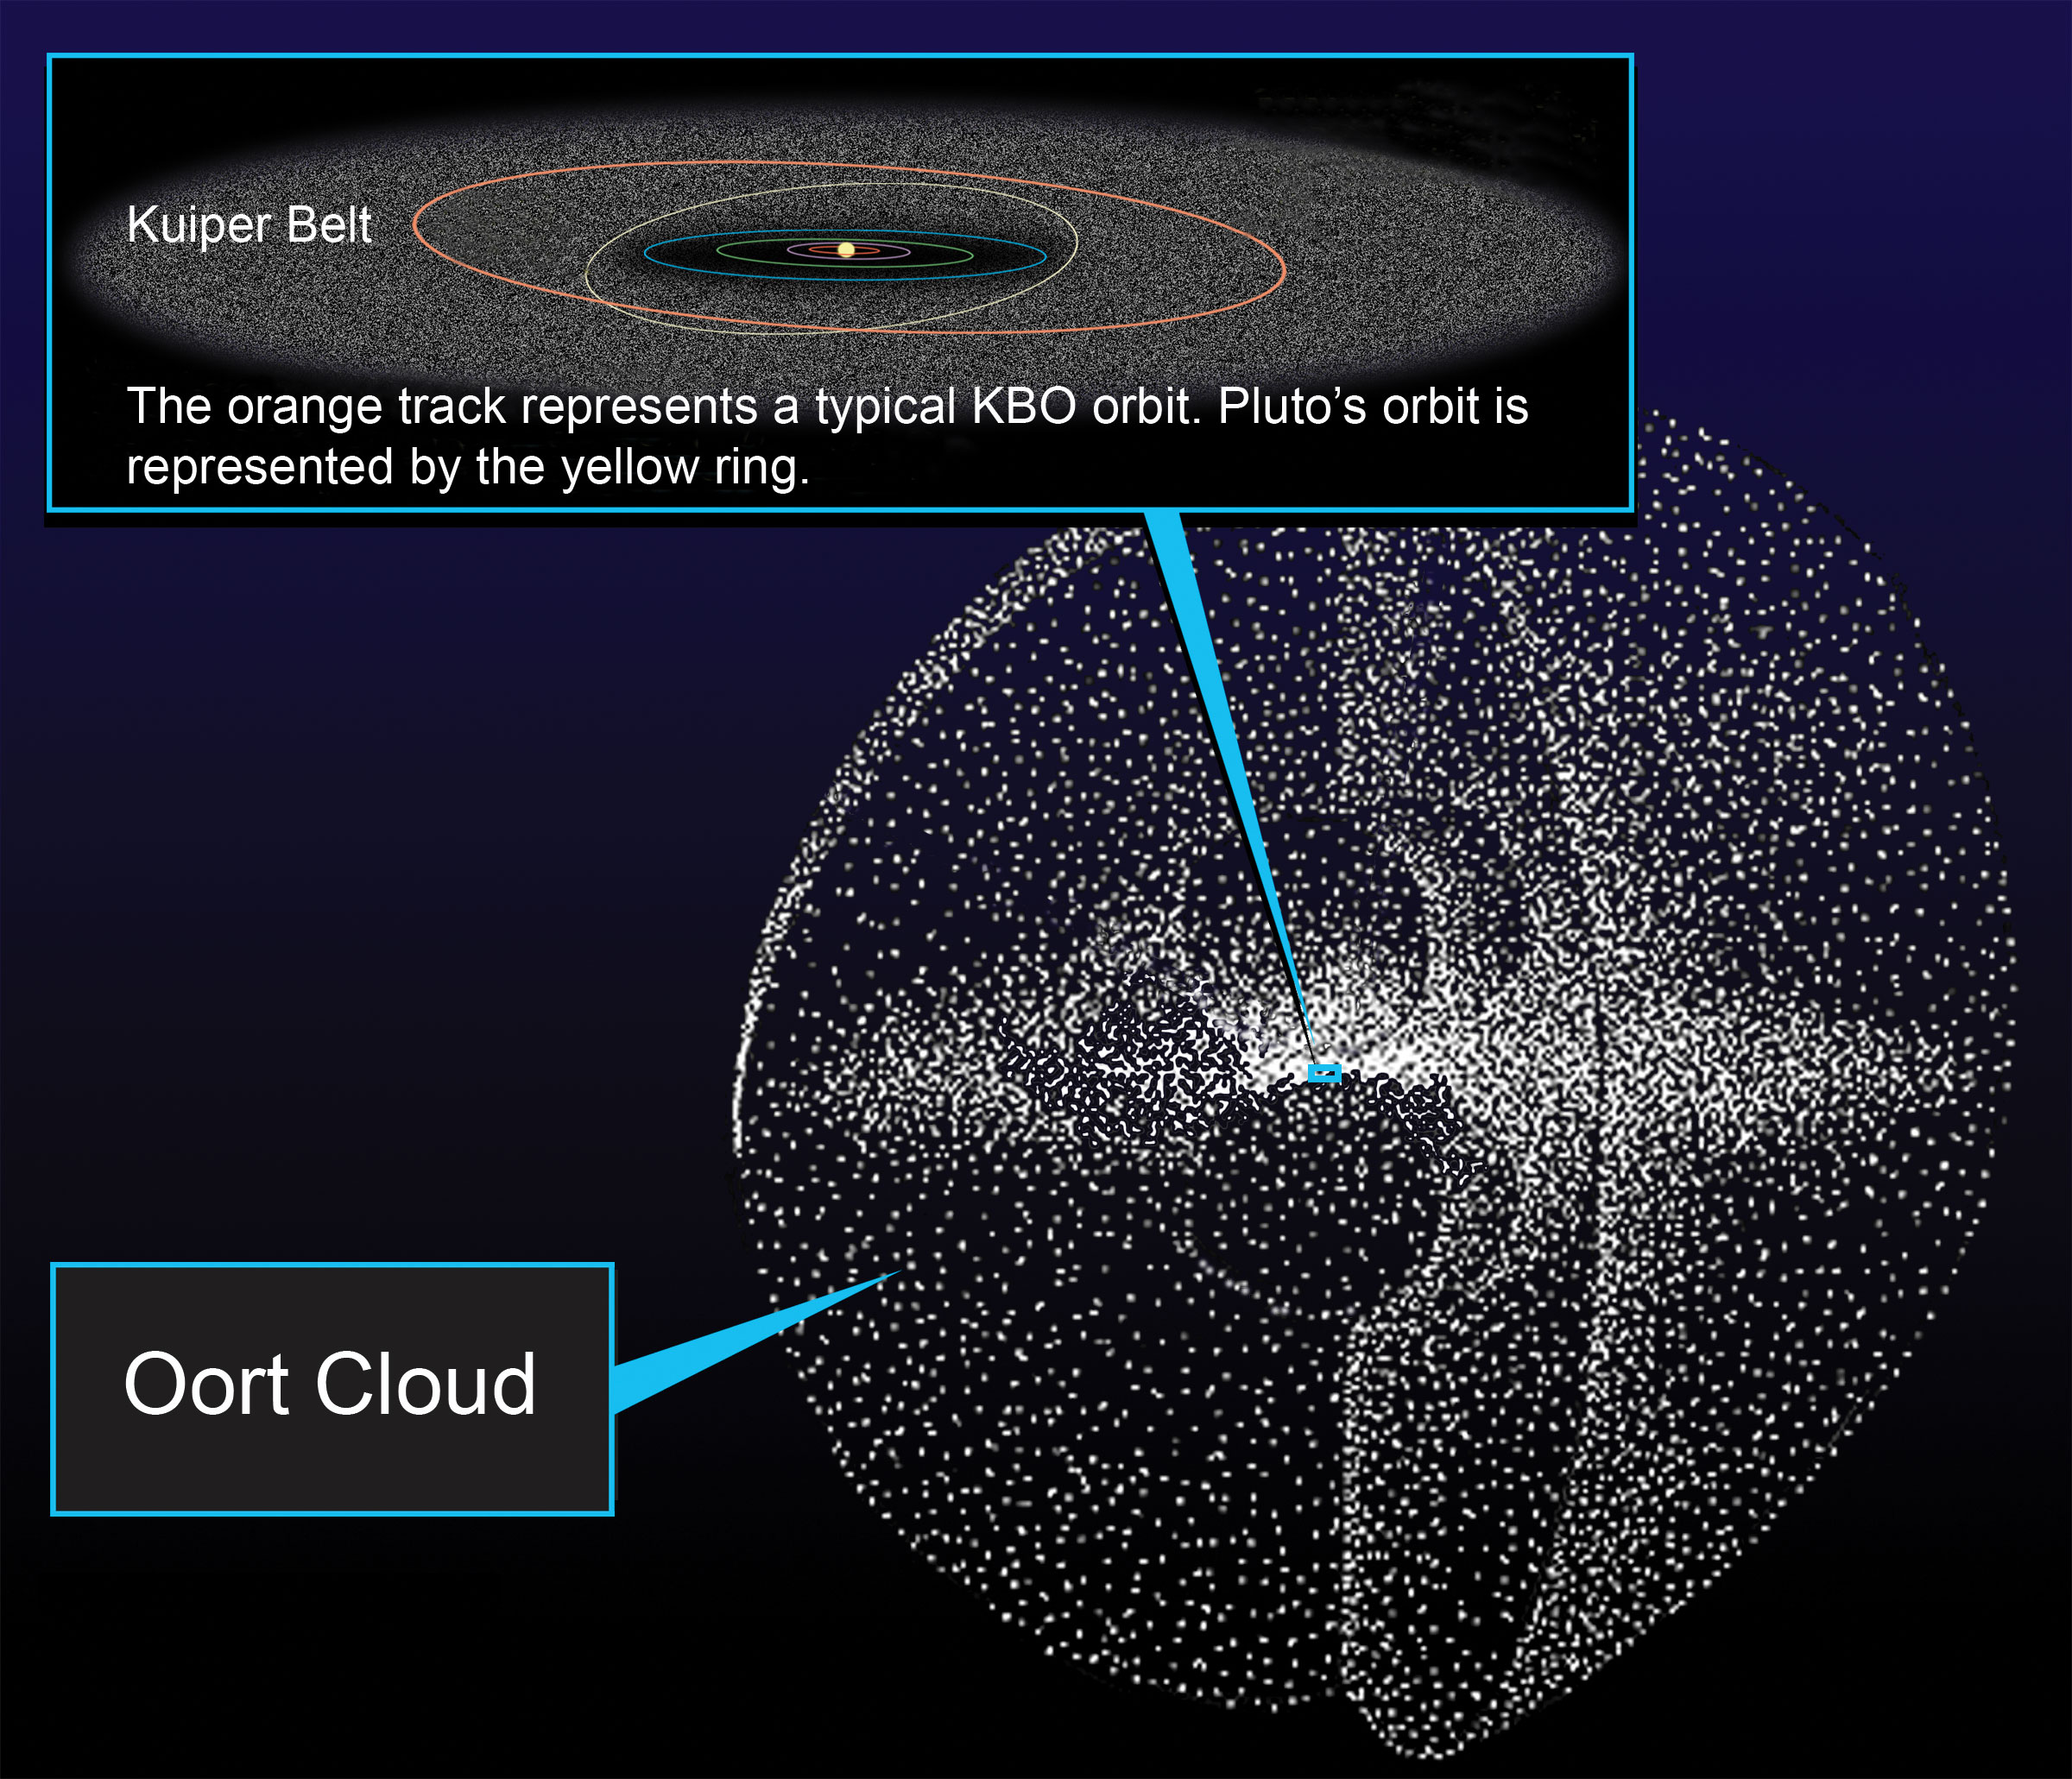 An illustration of the Kuiper Belt and Oort Cloud in relation to our solar system. Image credit: NASA